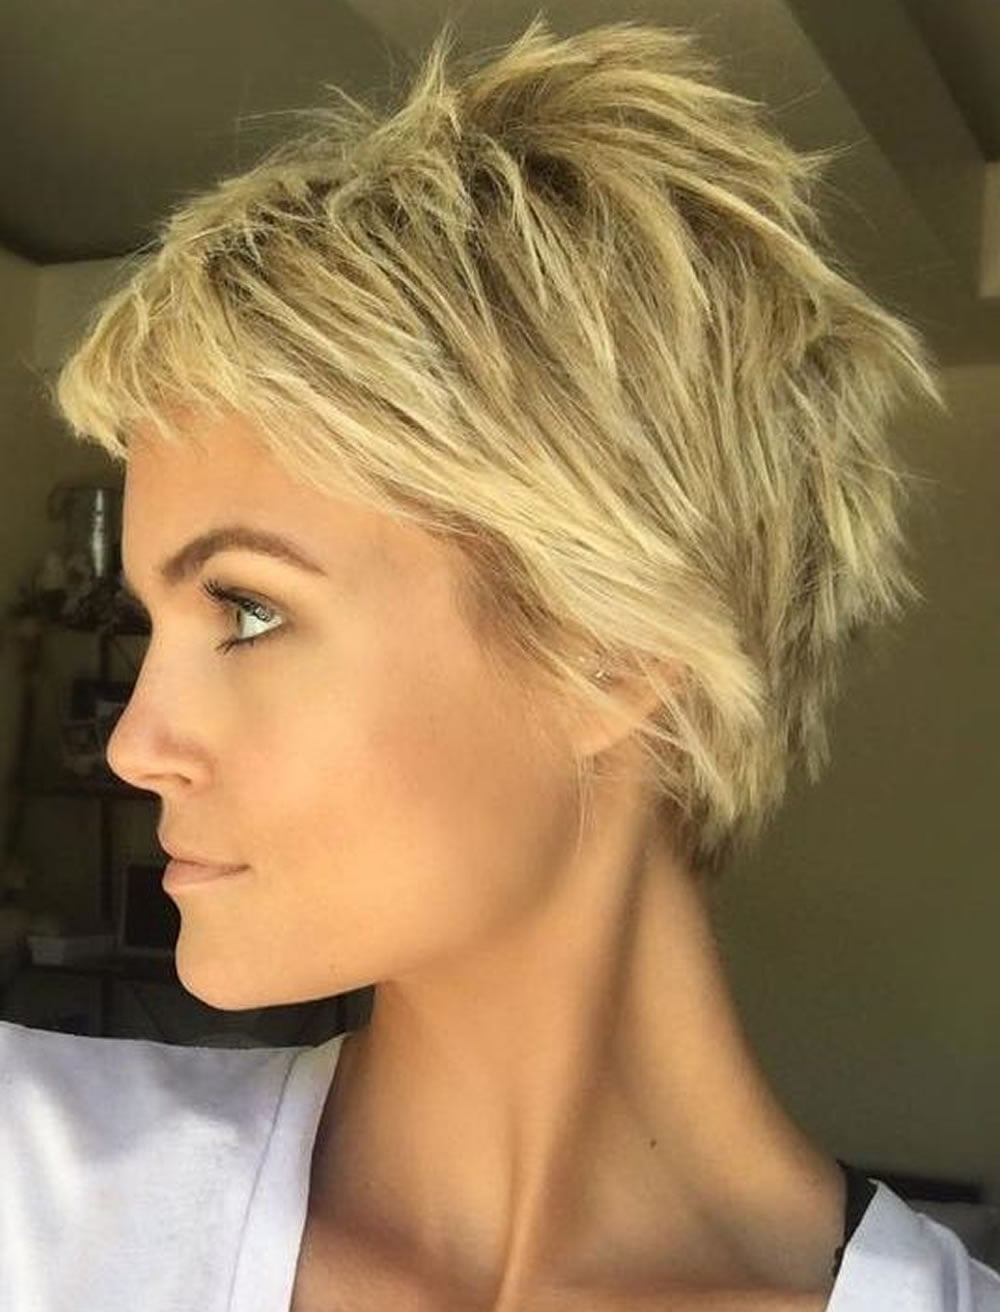 images 30 Popular Short Blonde Hairstyles